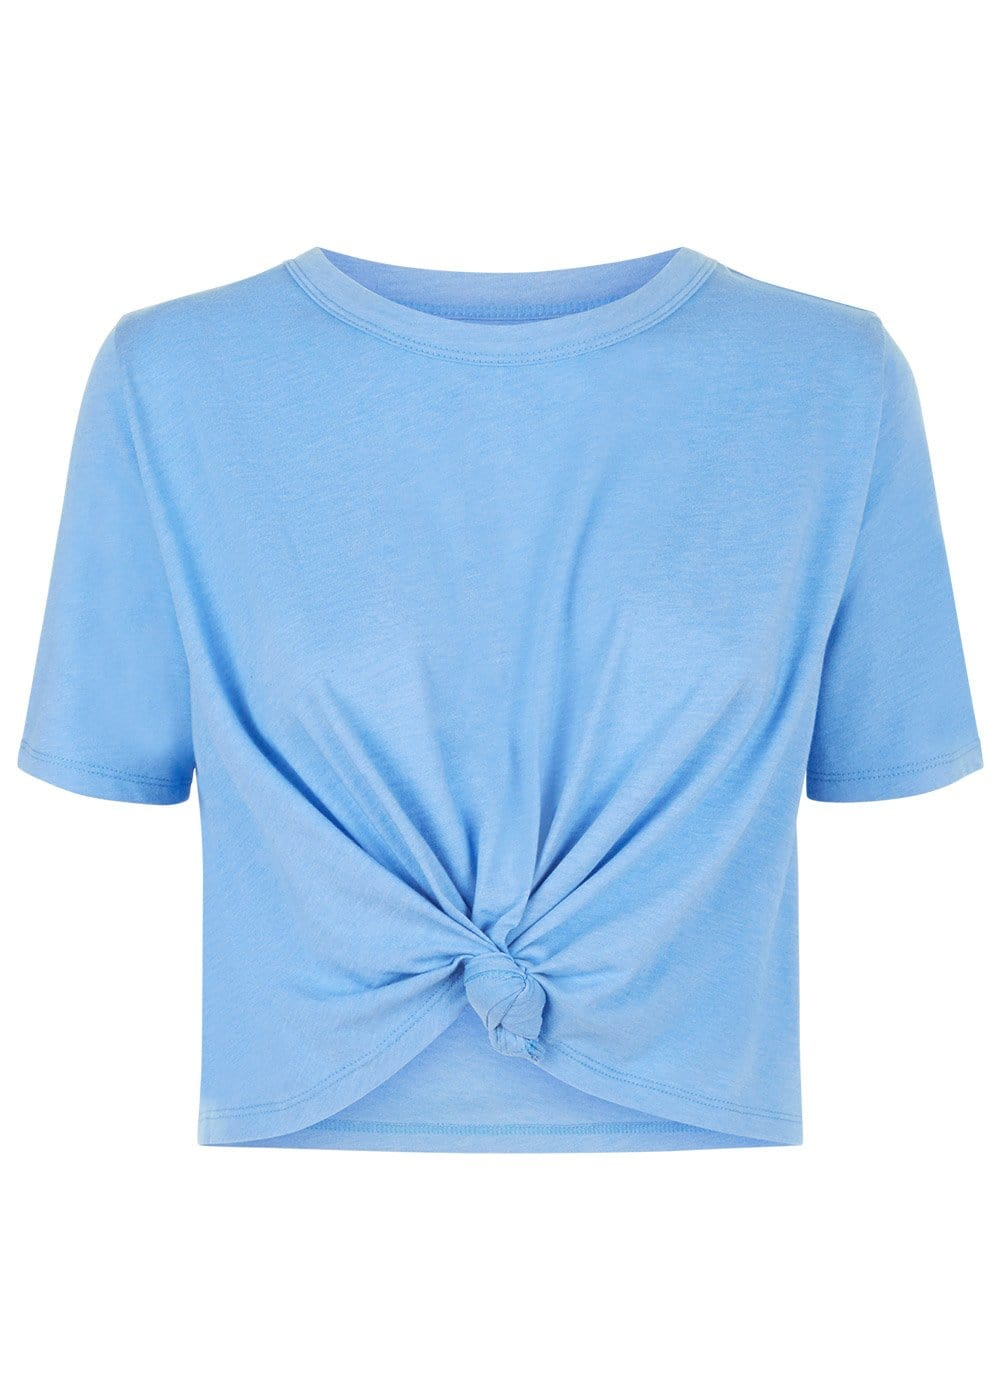 TeenzShop Youth Girls Blue Cropped T-shirt With Front Knot